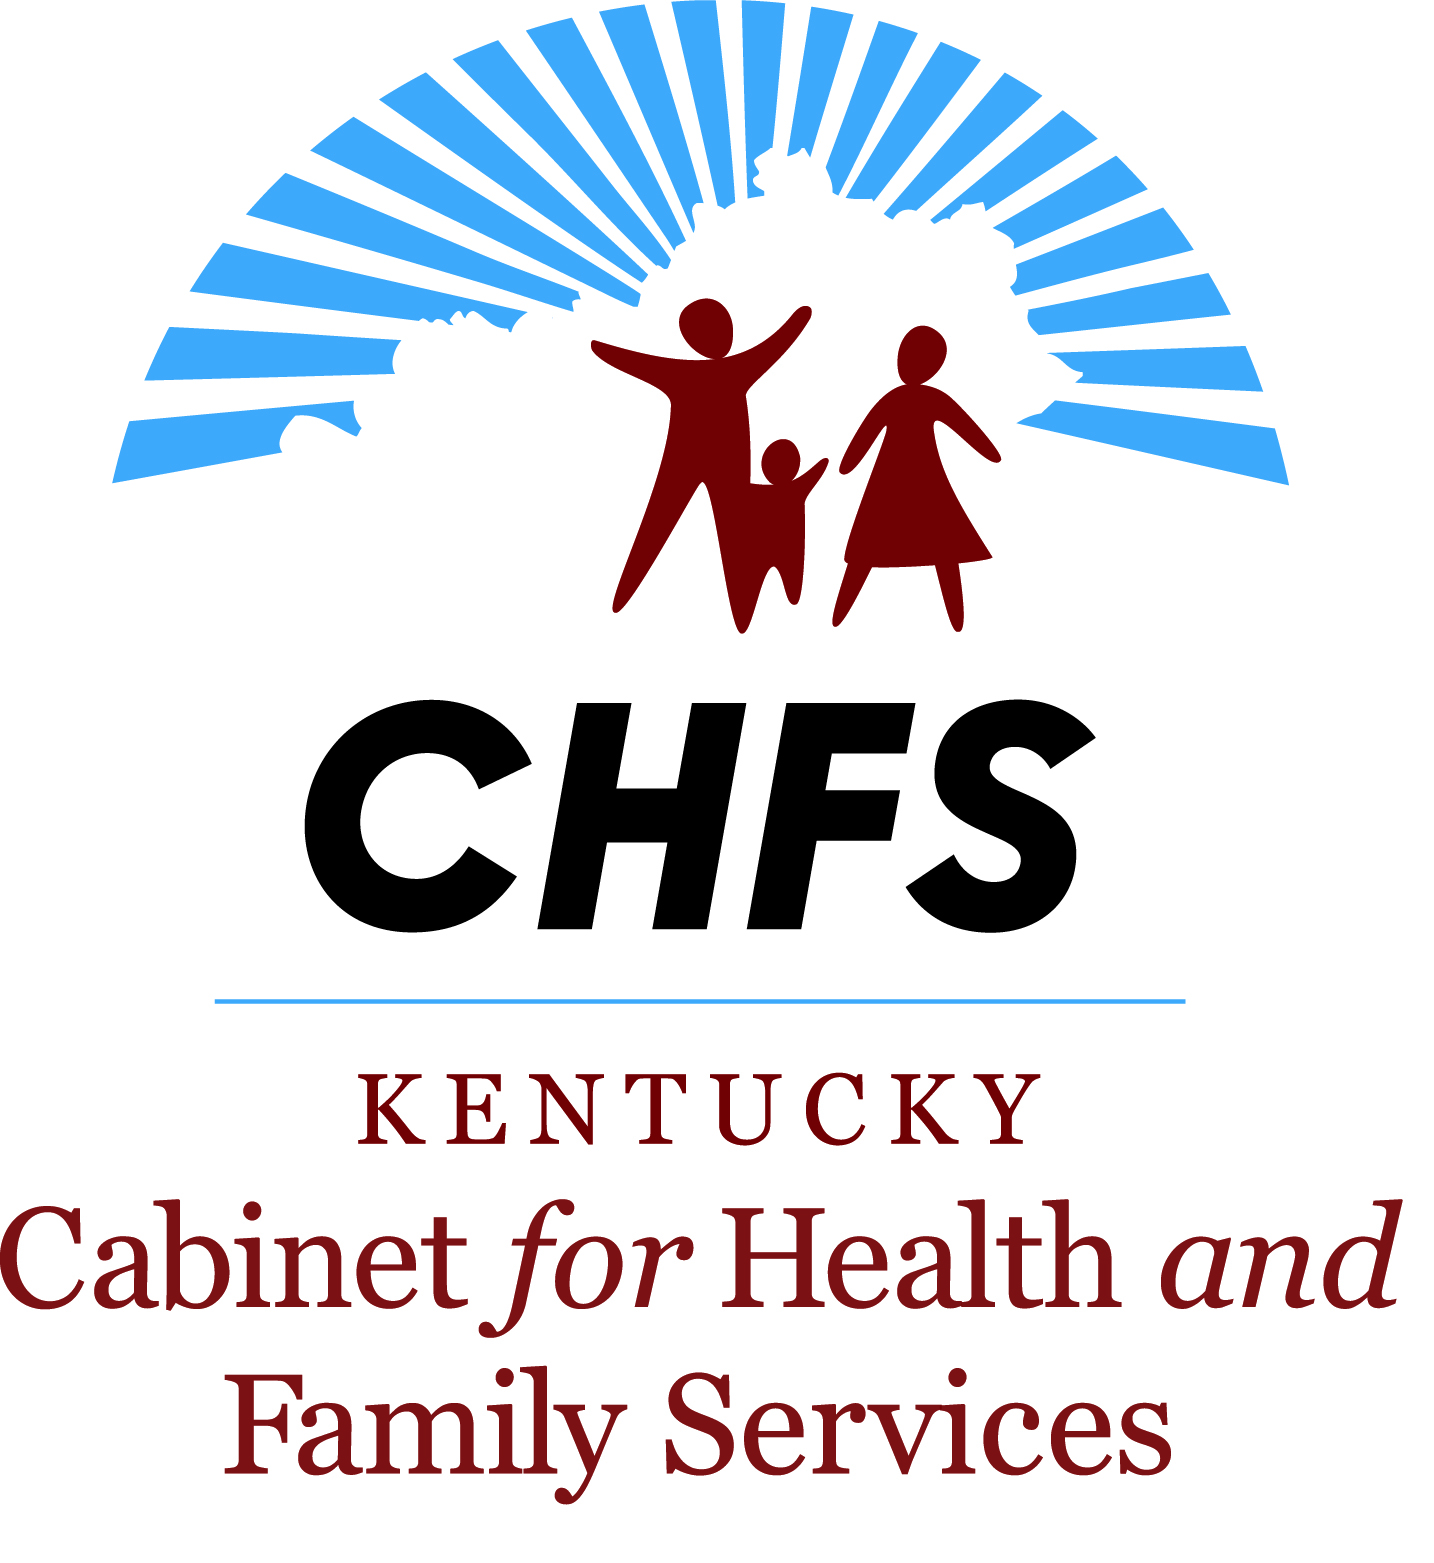 Cabinet for Health and Family Services (CHFS) Logo link